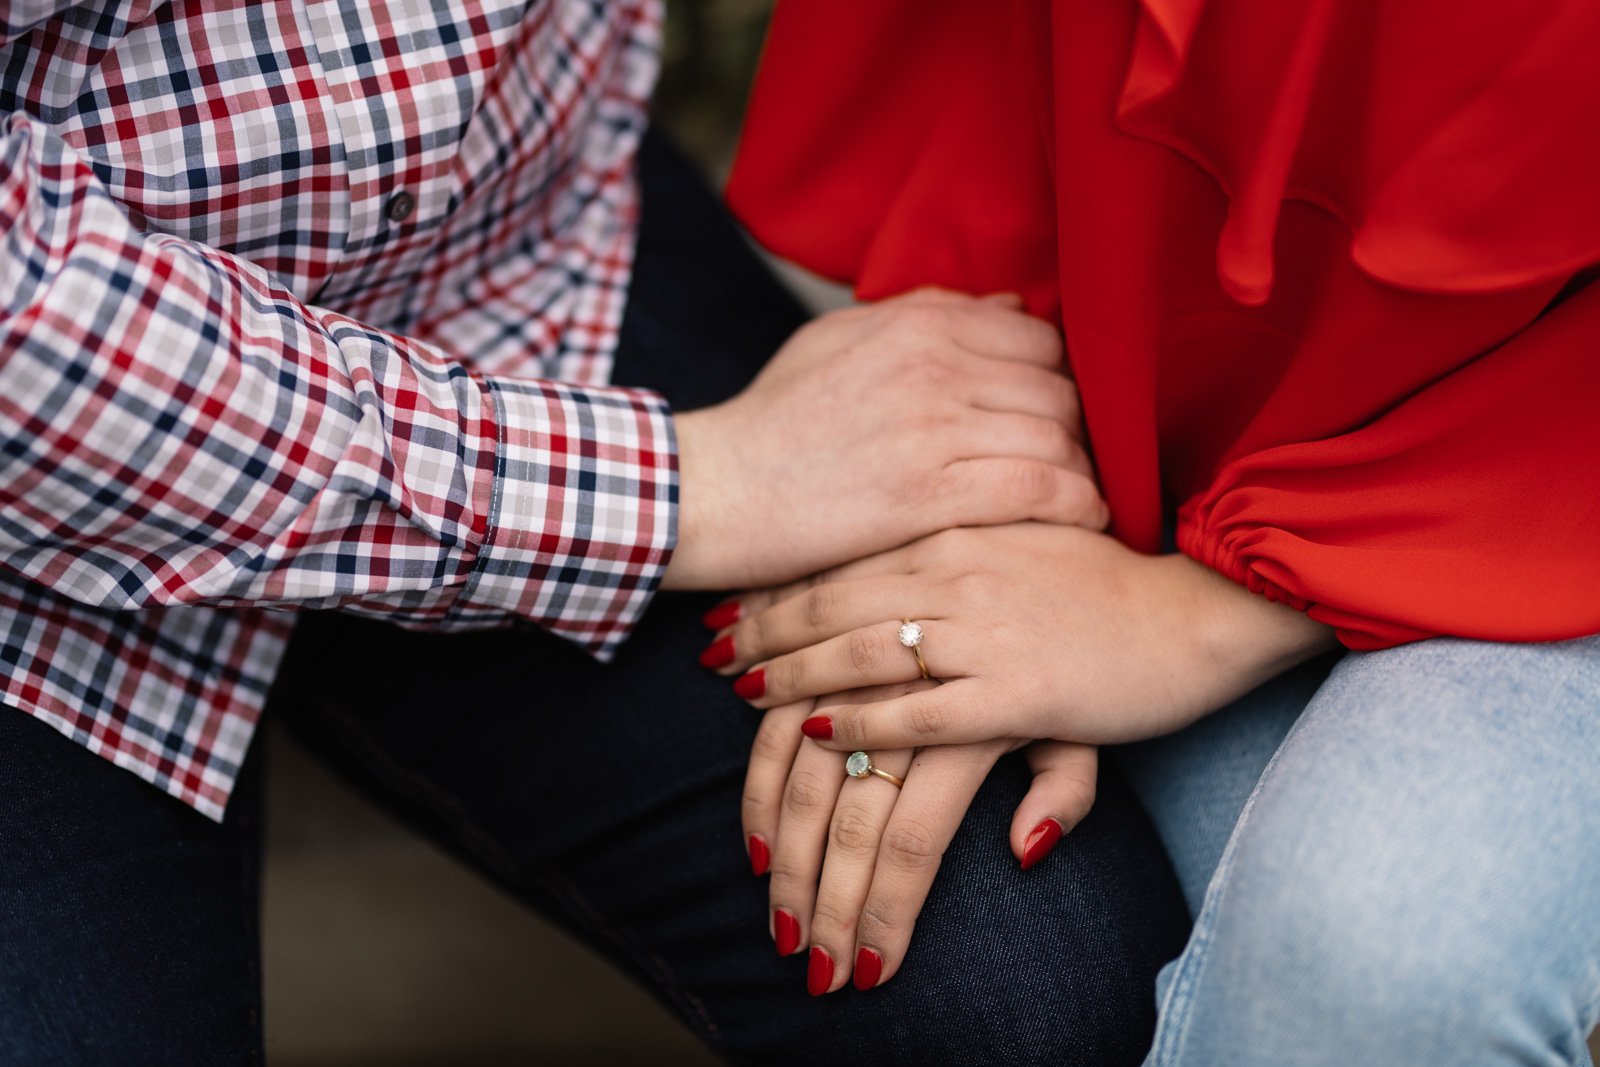 couple holding hands engagement ring